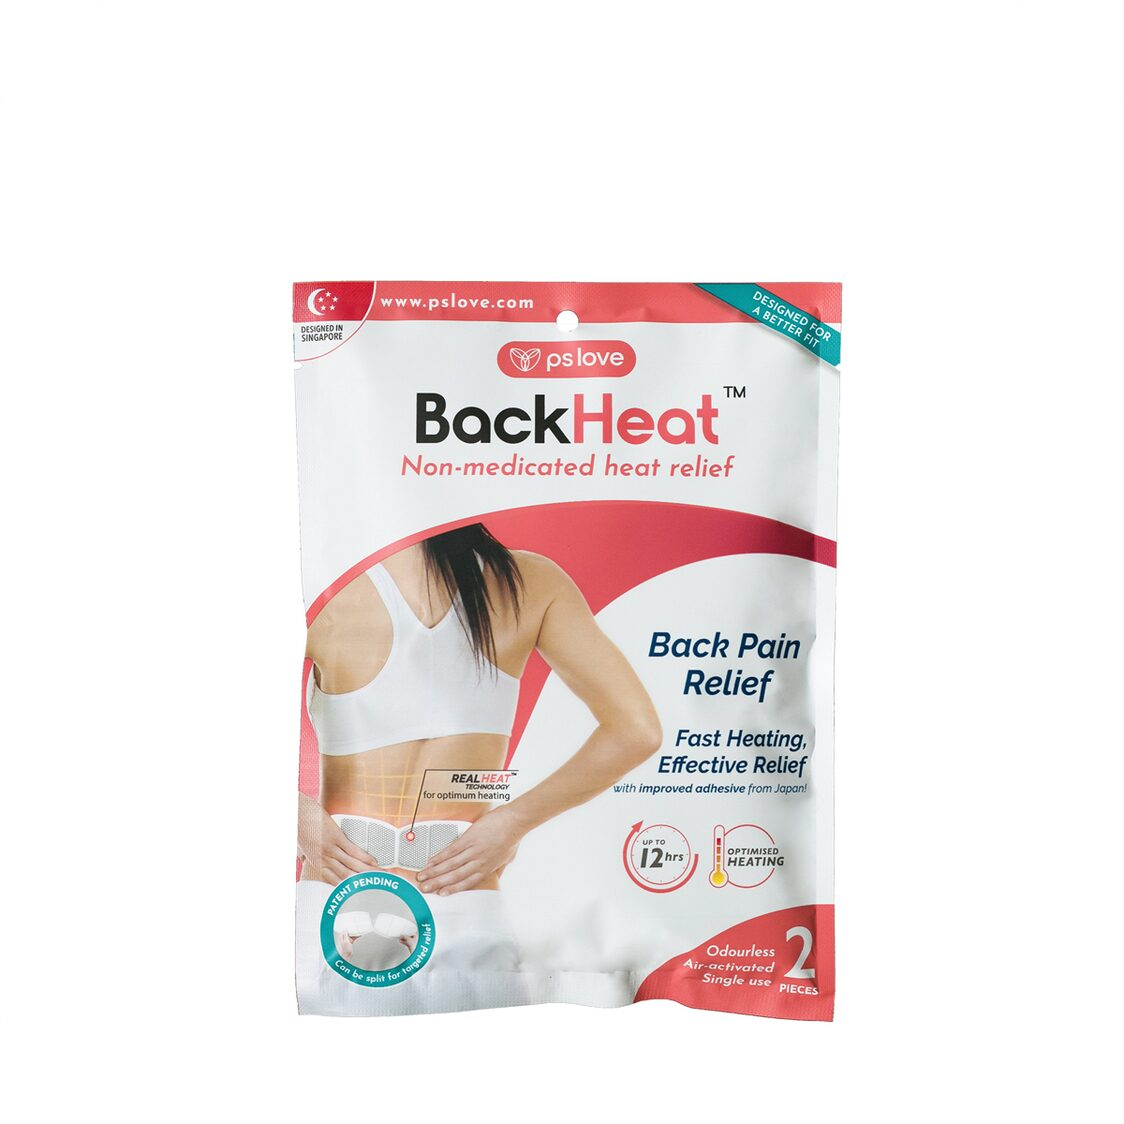 BackHeat Back Pain Relief Patch 2s